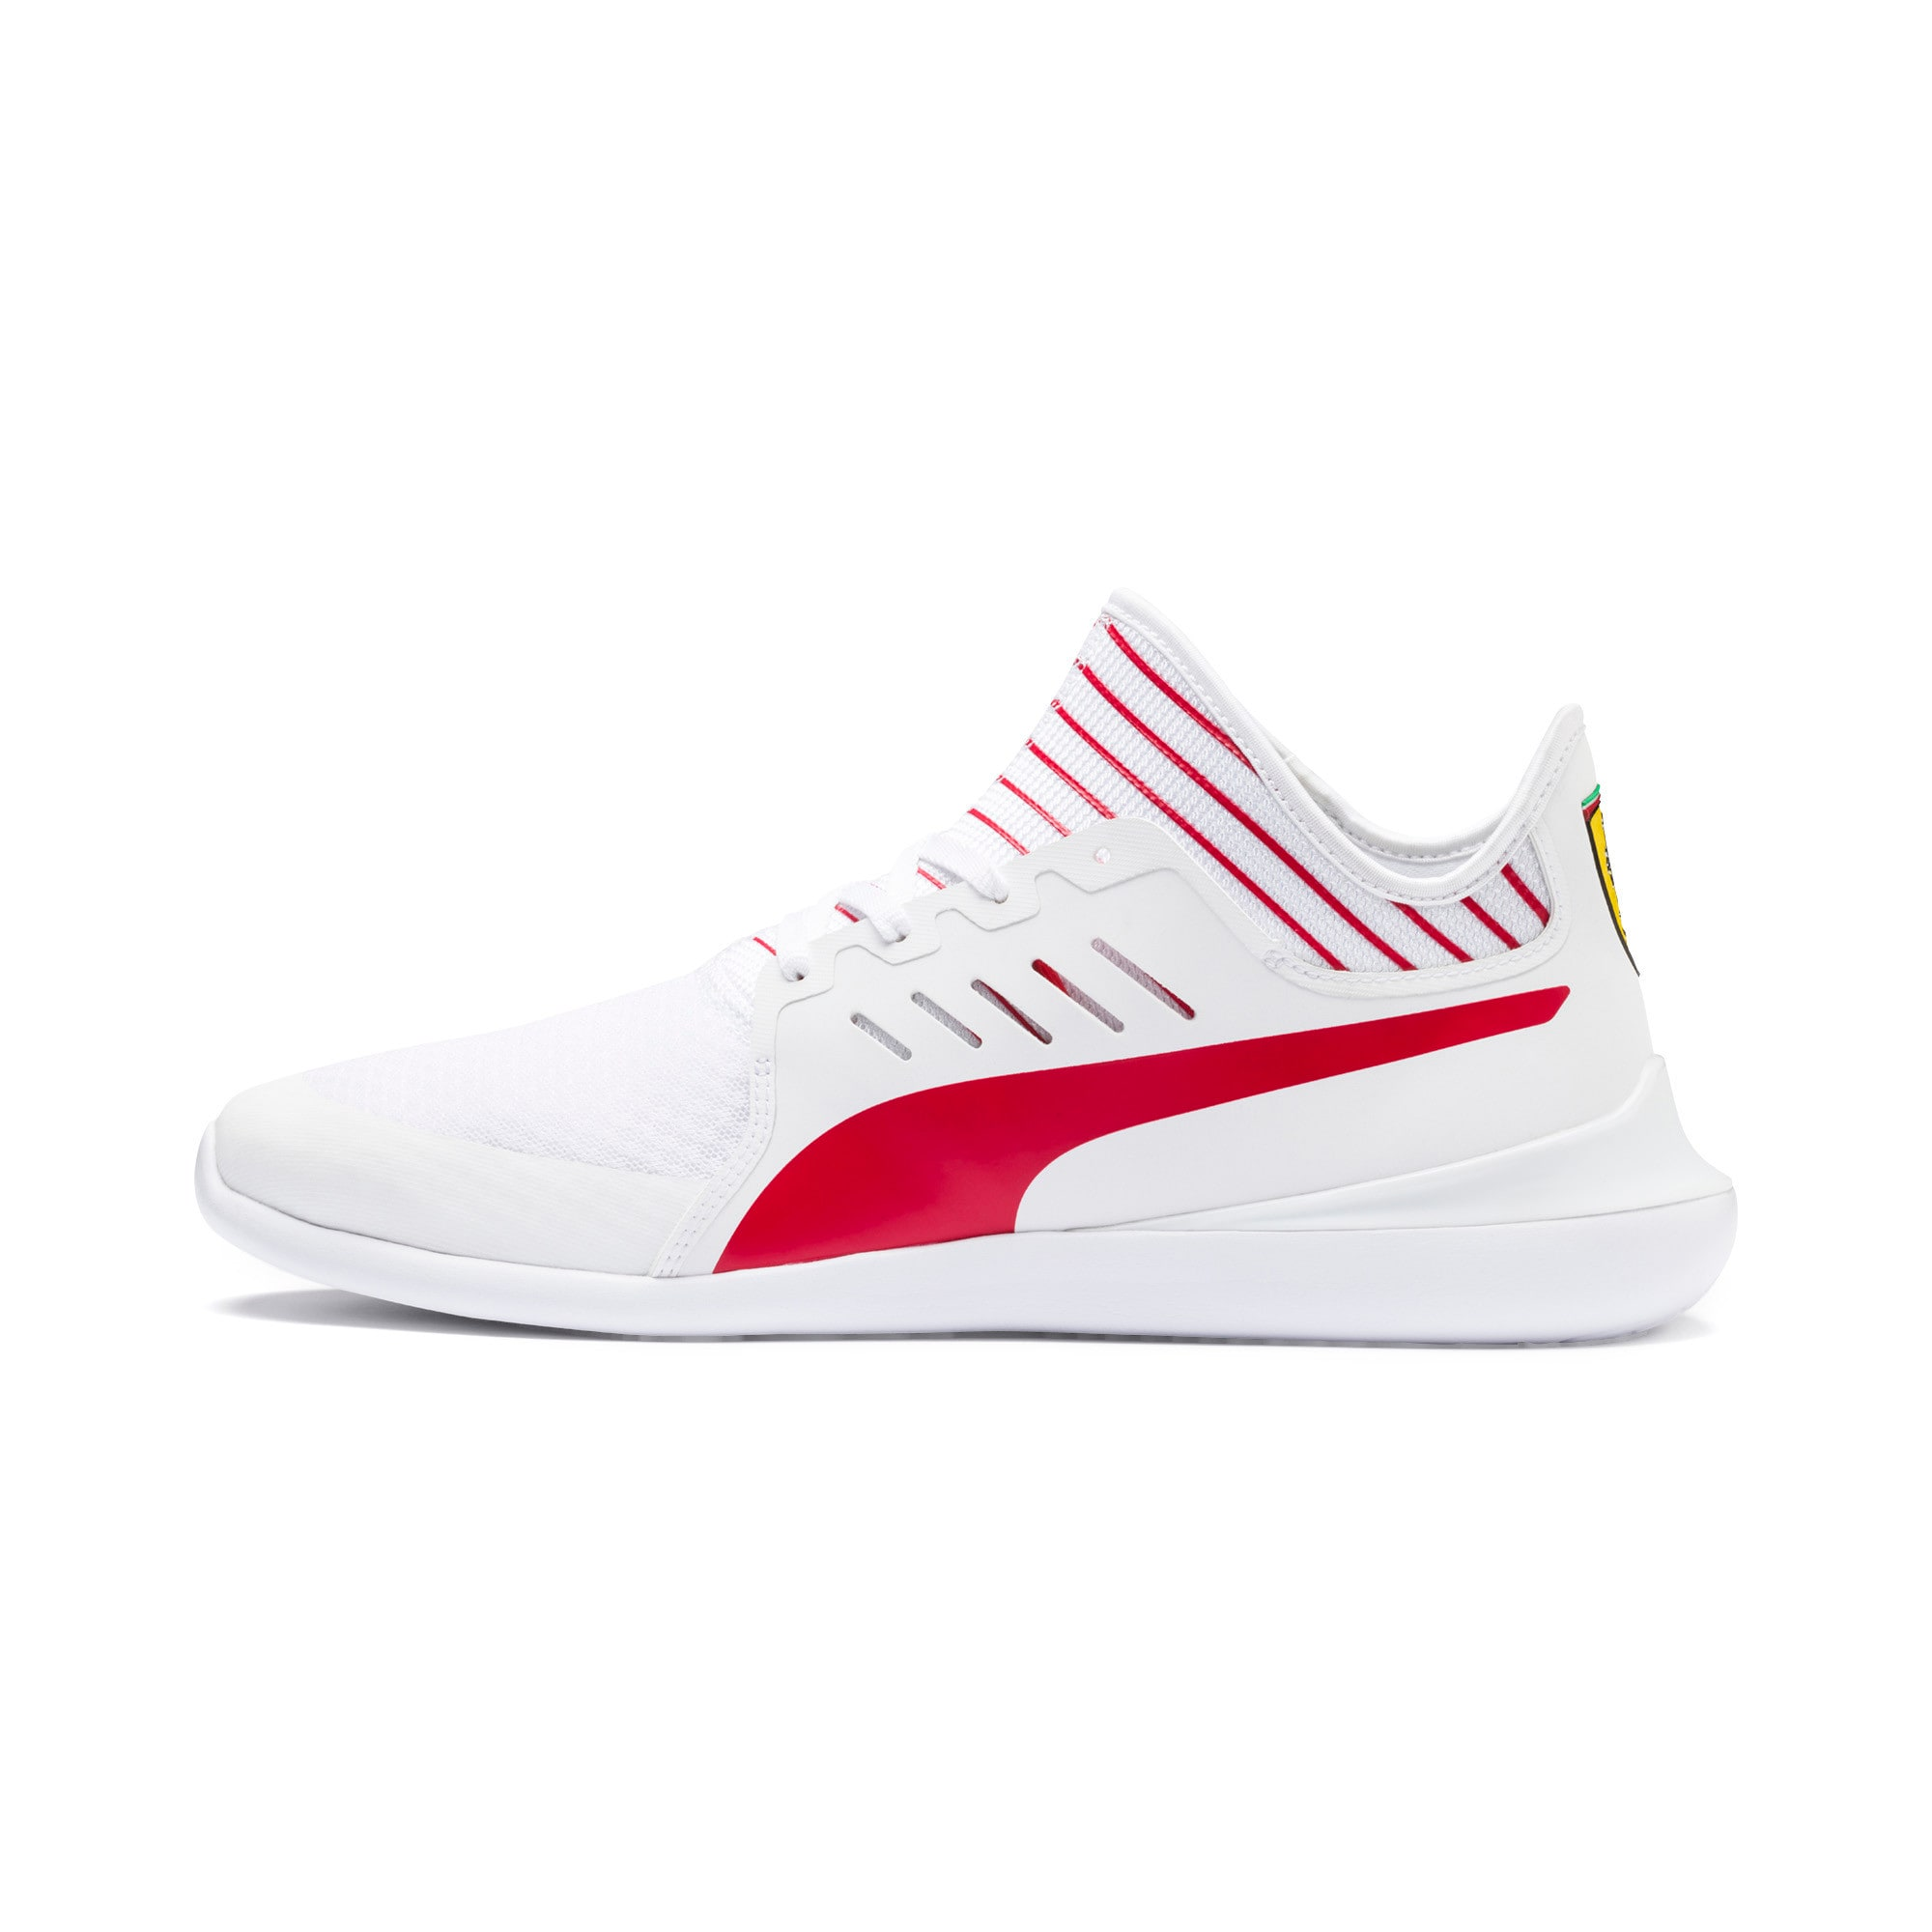 Thumbnail 1 of Scuderia Ferrari Evo Cat Mace Sneakers, Puma White-Rosso Corsa, medium